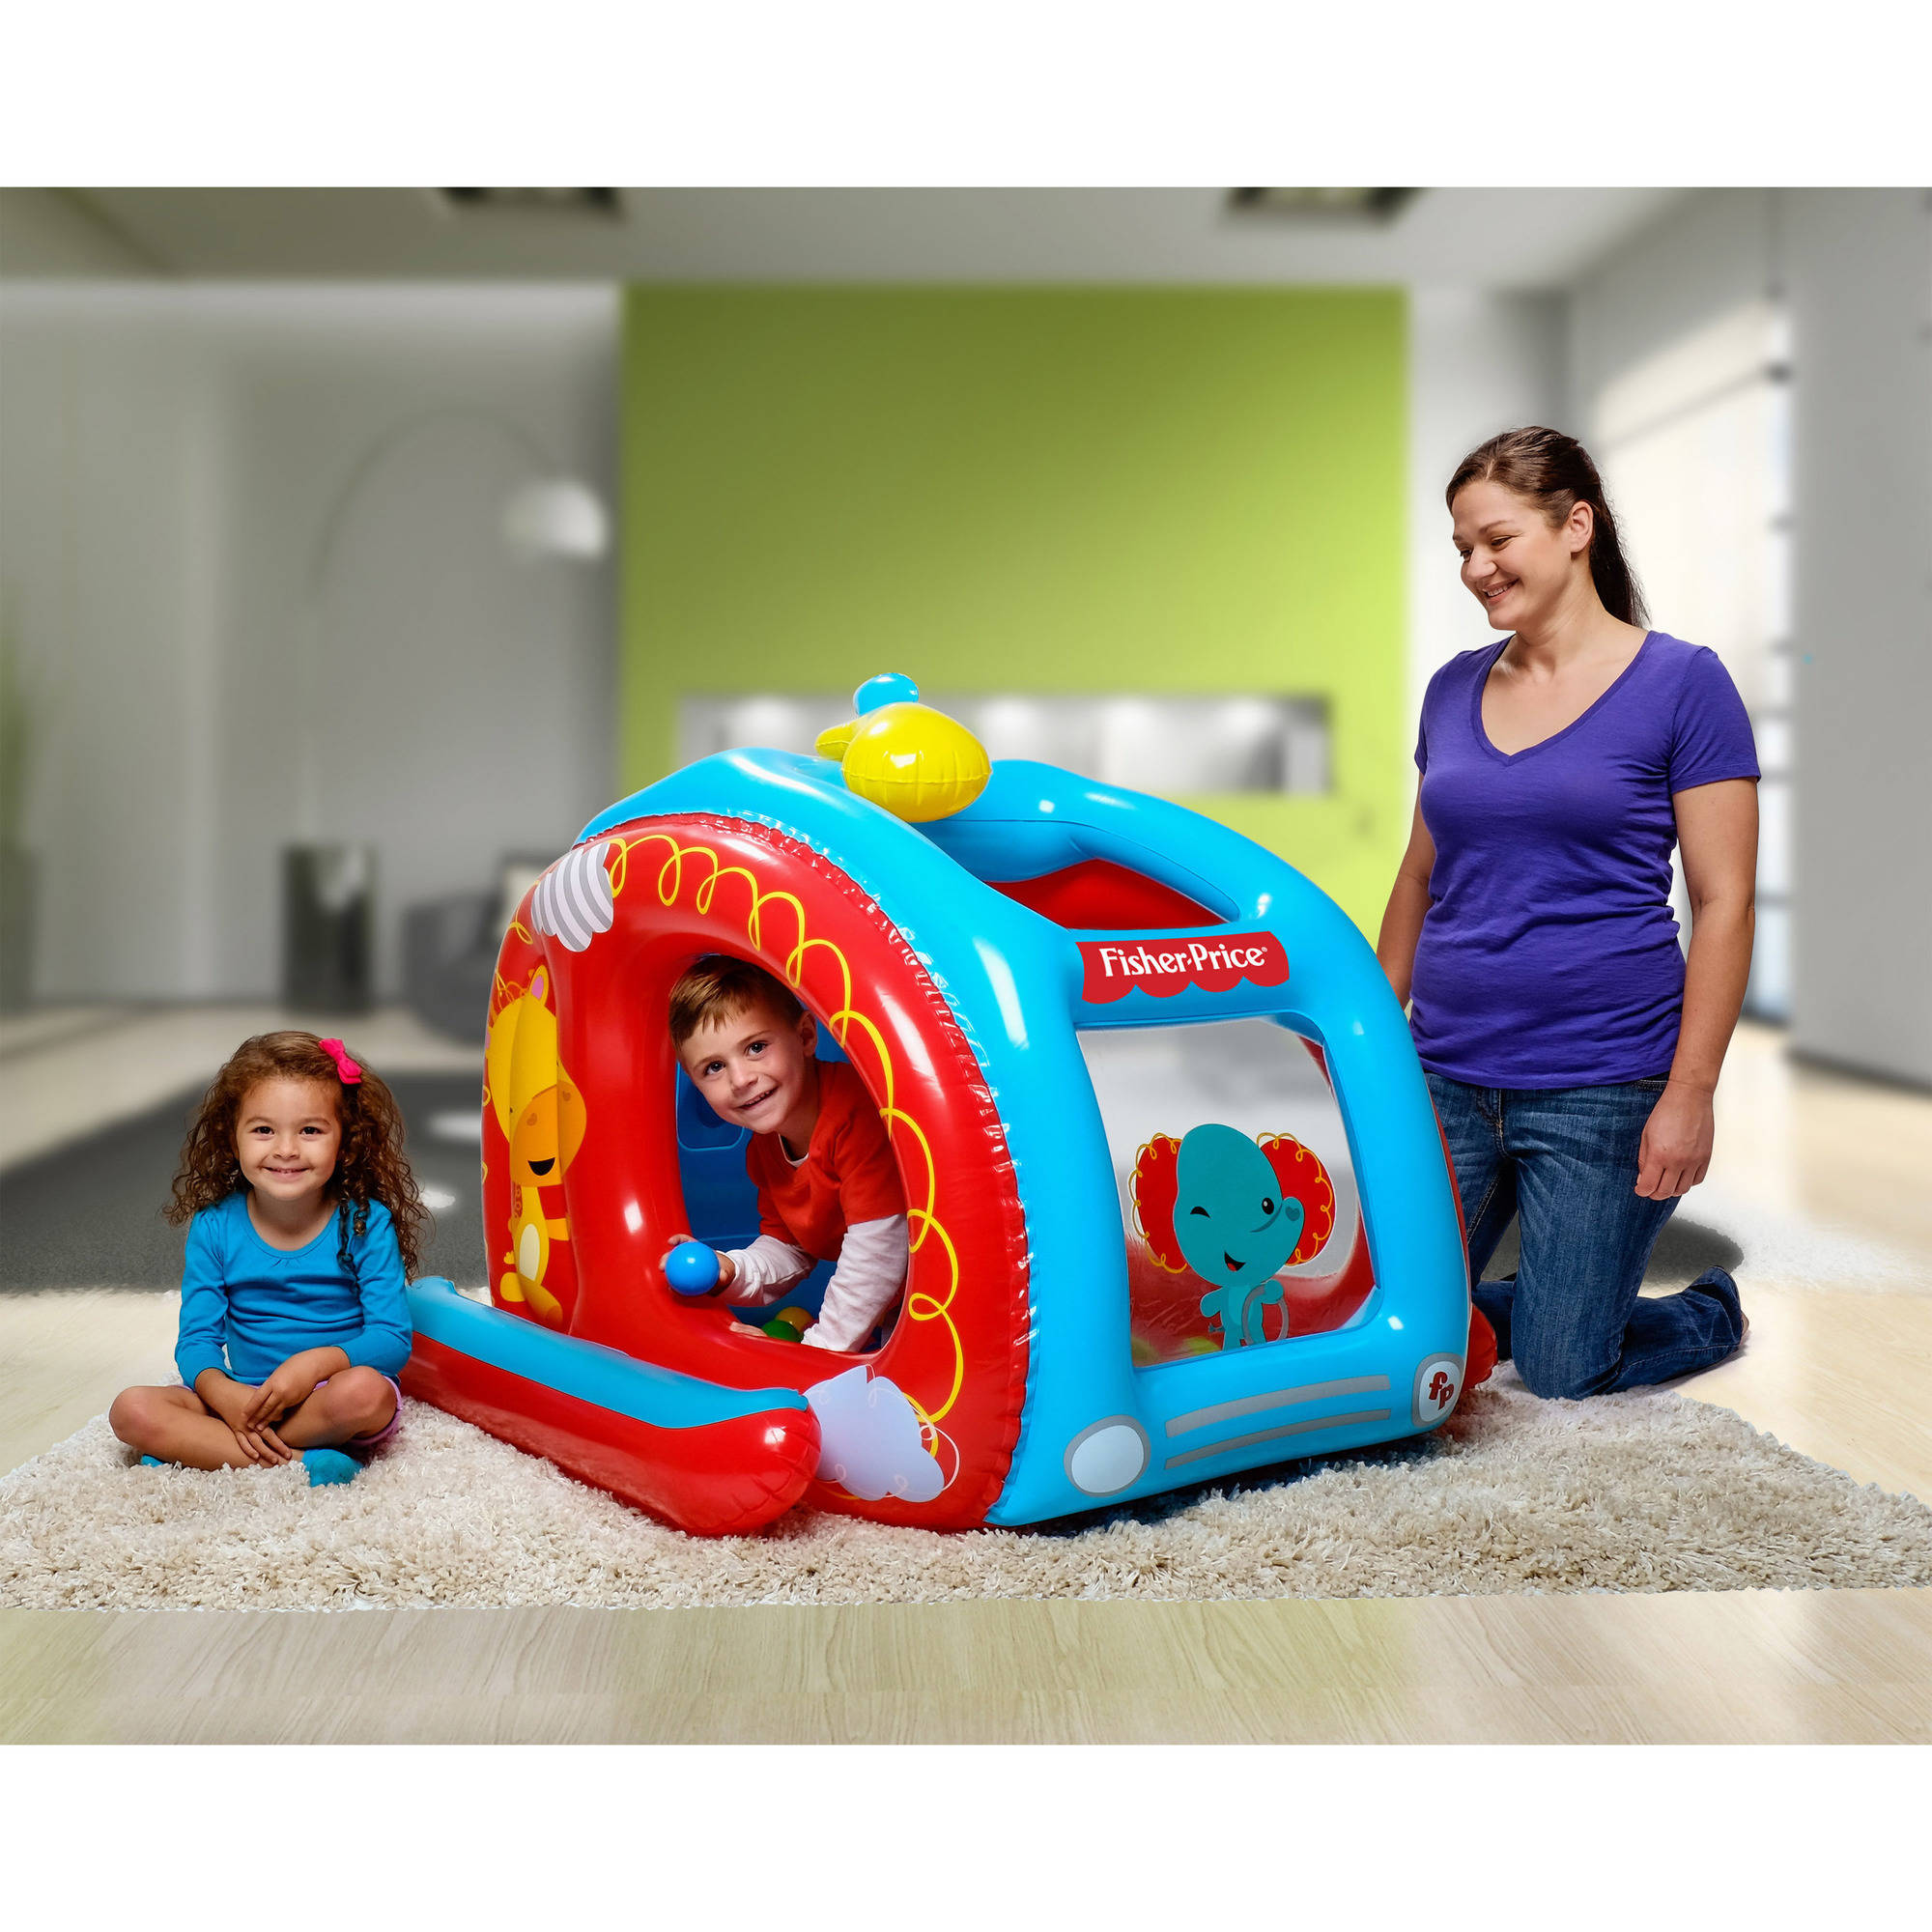 Fisher price inflatable fire truck ball pit for Ball pits near me